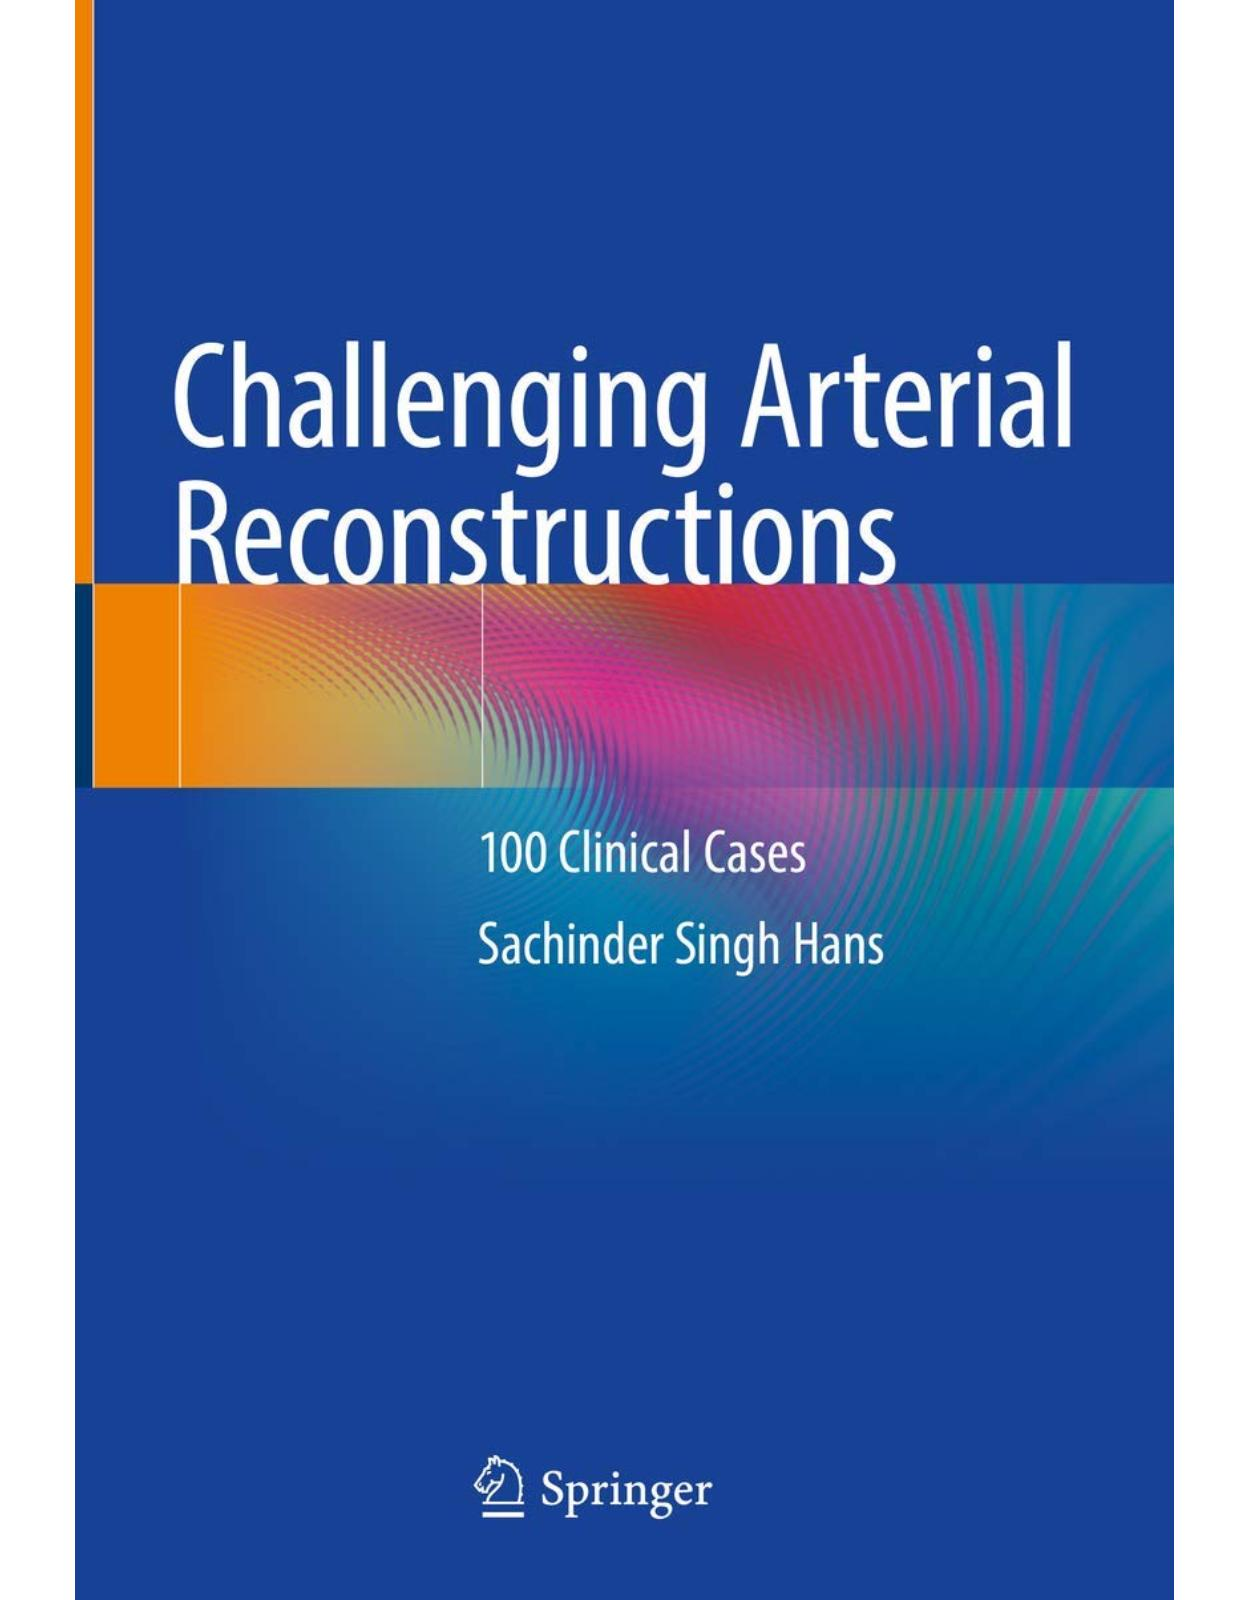 Challenging Arterial Reconstructions: 100 Clinical Cases